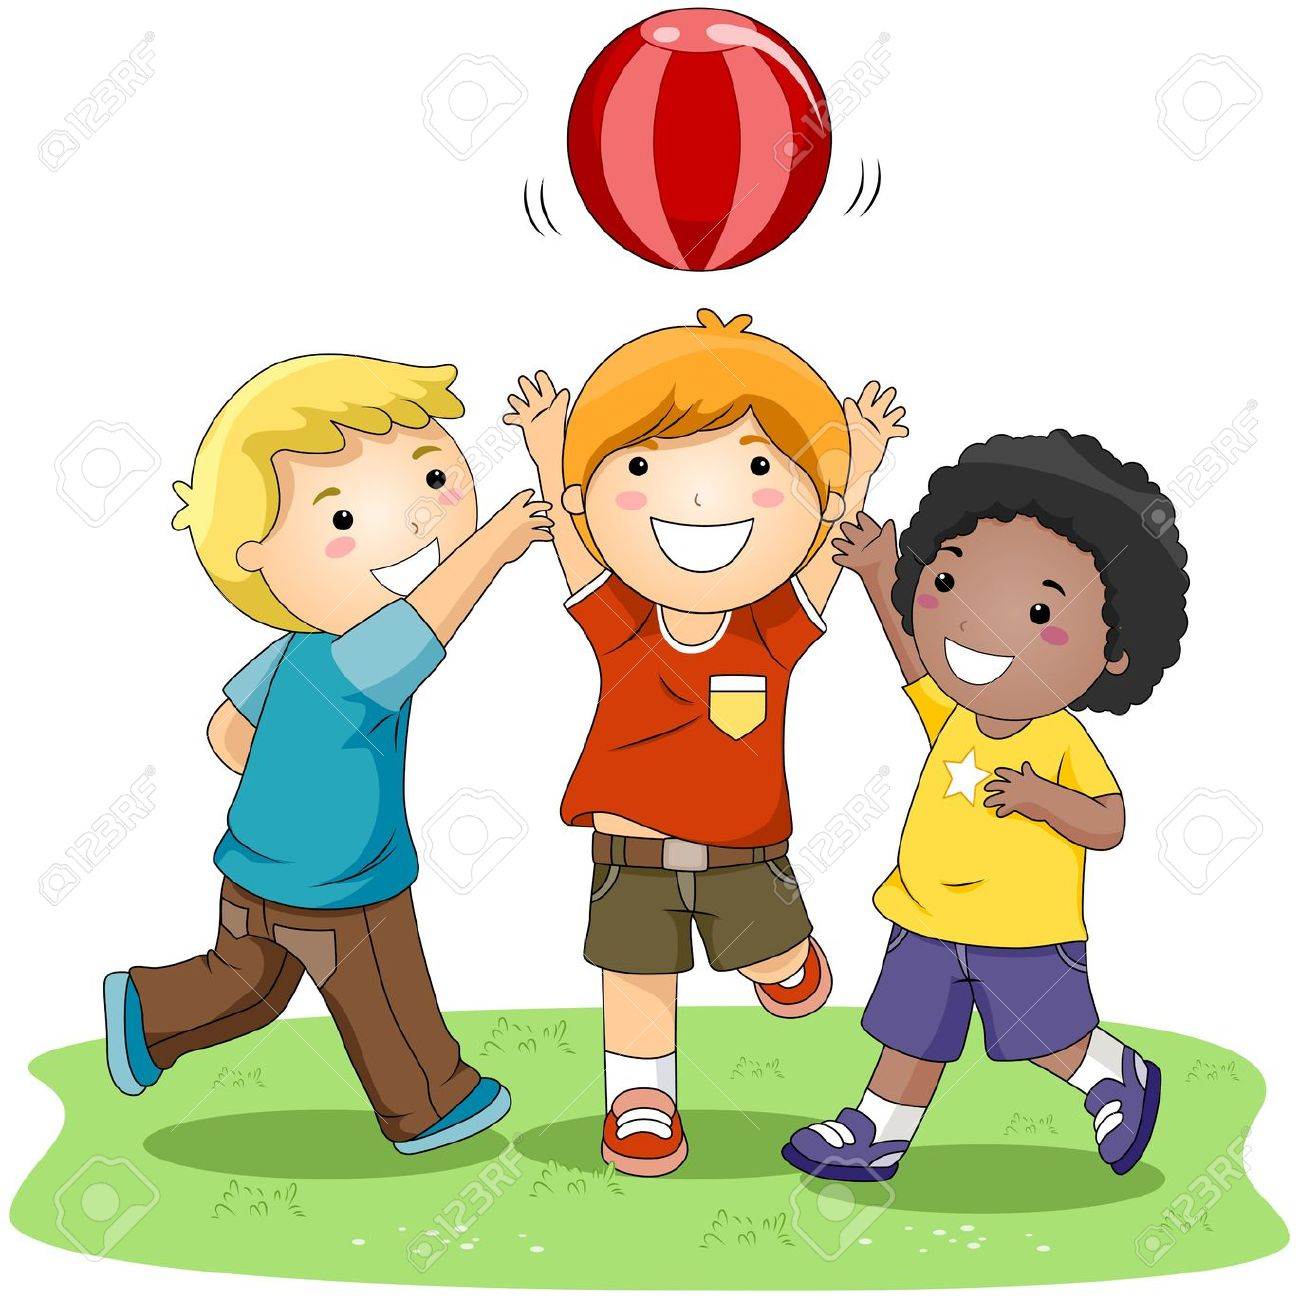 children playing ball in the park stock photo picture and royalty rh 123rf com children playing clip art free kid playing clipart black and white